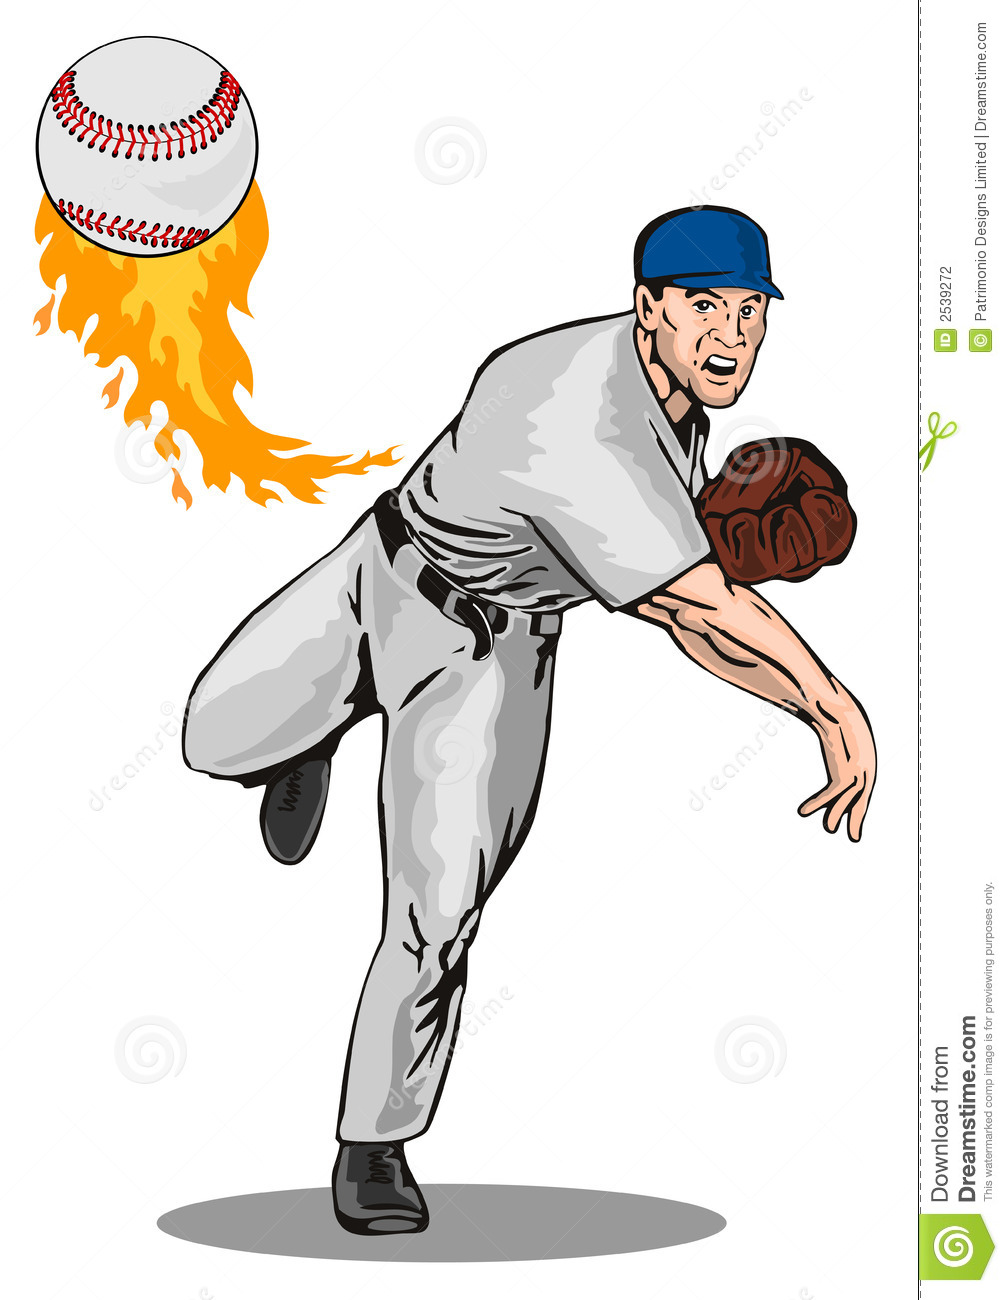 Baseball Pitcher Stock Photography - Image: 2539272